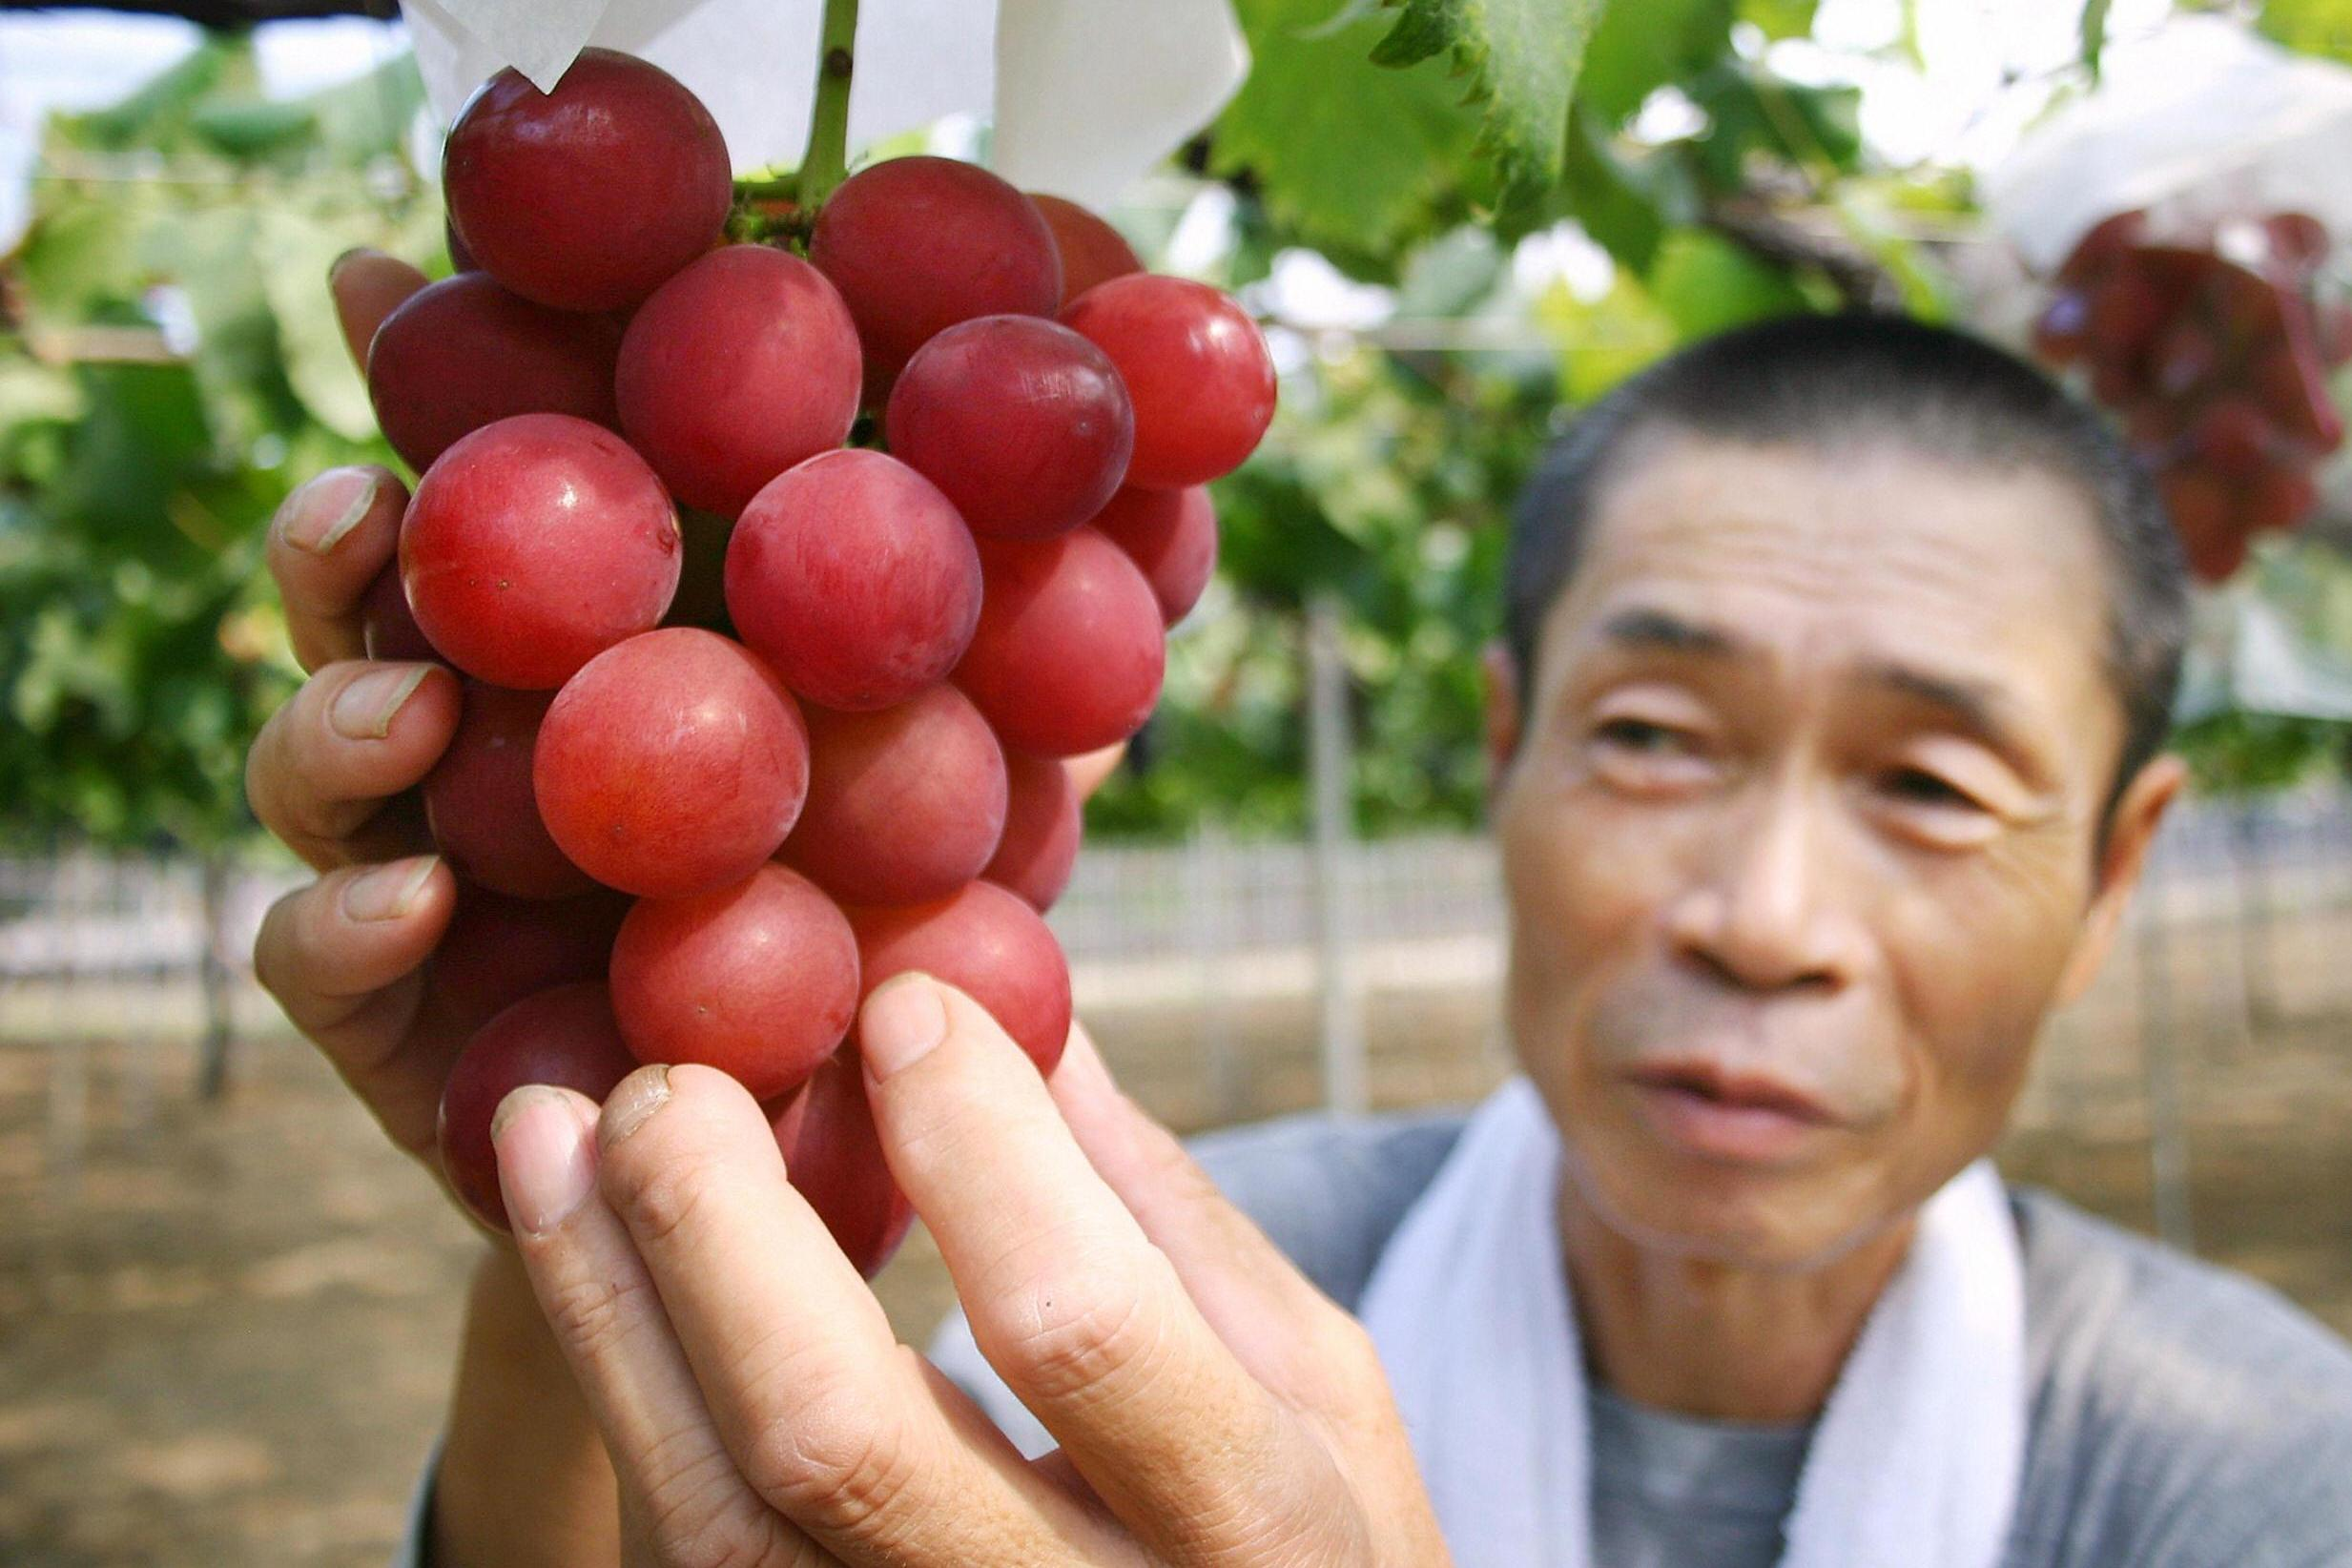 Bunch of Ruby Roman grapes sells for £8,800 in Japan 1